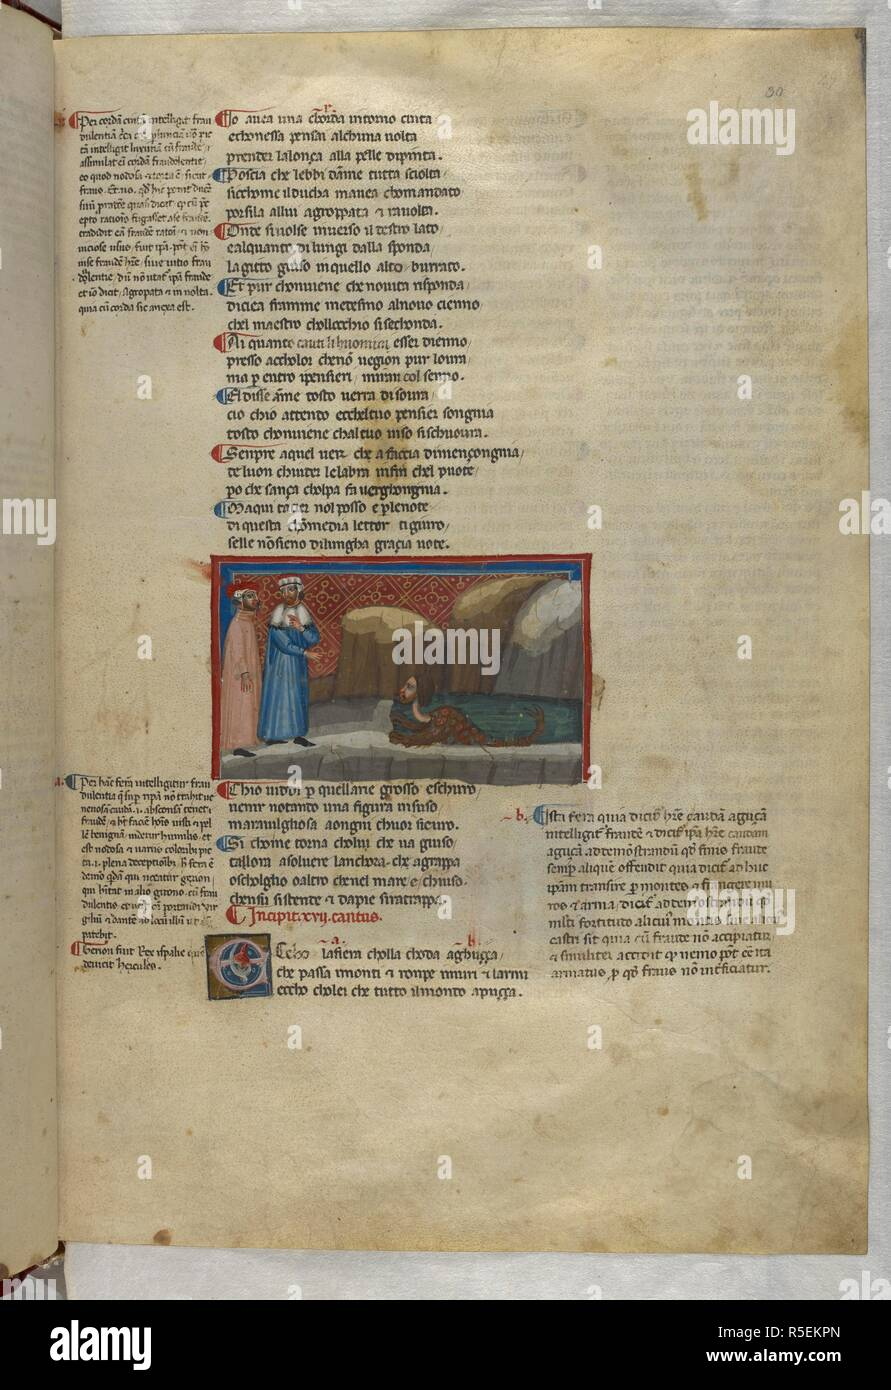 Inferno: Virgil summons the beast Geryon. Dante Alighieri, Divina Commedia ( The Divine Comedy ), with a commentary in Latin. 1st half of the 14th century. Source: Egerton 943, f.30. Language: Italian, Latin. - Stock Image